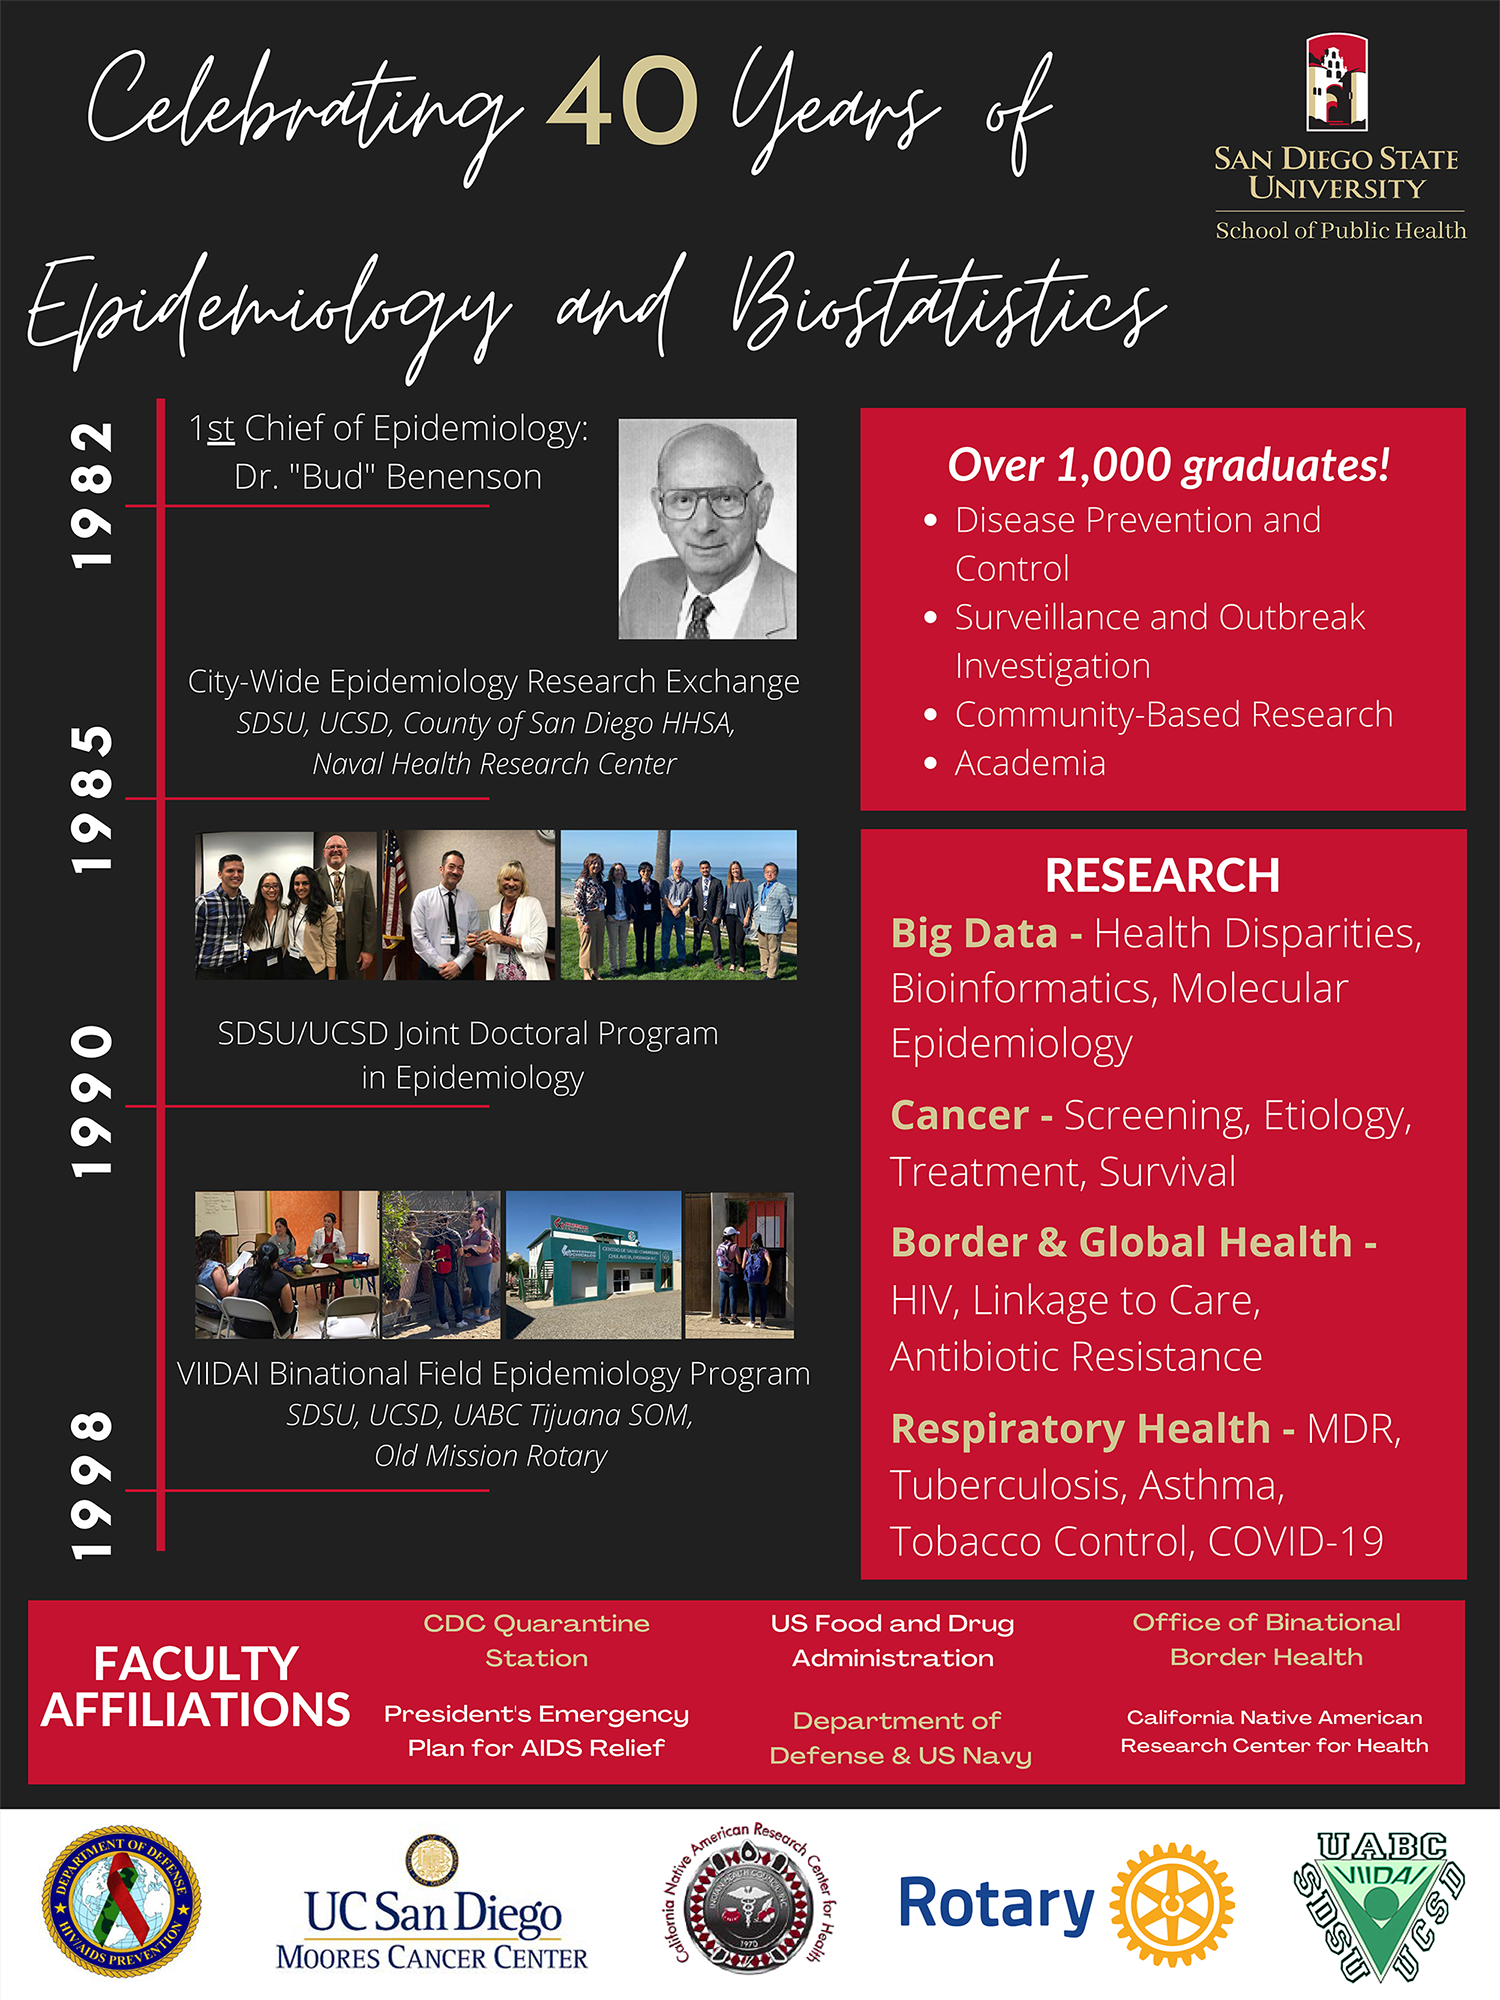 "Celebrating 40 Years of Epidemiology and Bio Statistics 1982 - 1st Chief of Epidemiology: Dr. ""Bud"" Benson; 1985 - city-wide epidemiology research exchange, SDSU, UCSD, County of San Diego HHSA, Naval Health Research Center; 1990 - SDSU/UCSD Joint Doctoral Program in Epidemiology; 1998 - VIDDAI Binational Field Epidemiology Program, SDSU, UCSD, UABC Tijuana SOM, Old Mission Rotary; Over 1,00 graduates: disease prevention and control, surveillance and outbreak investigation, community-based research, & academia. Research: big data (health disparities, bioinformatics, molecular epidemiology), cancer(screening, etiology, treatment, survival), border & global health (HIV, Linkage to Care, Antibiotic Resistance), Respiratory Health(MDR, Tuberculosis, asthma, tobacco control, COVID-19)"